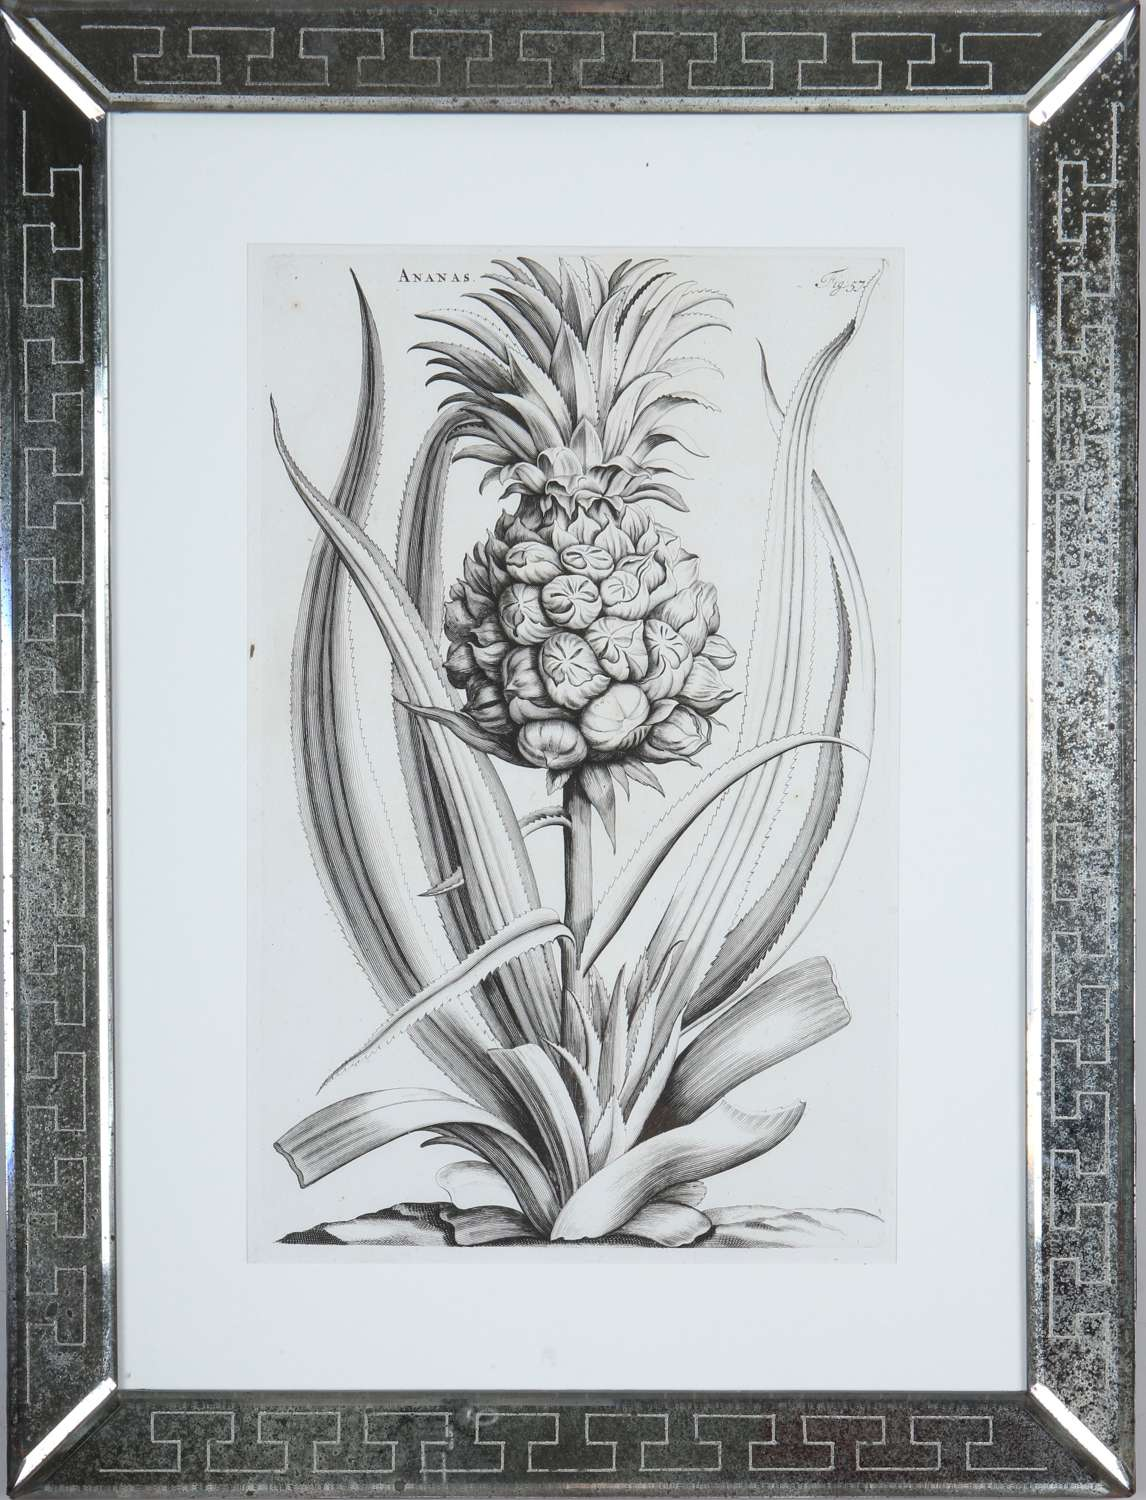 Jan & Caspar Commelin: 17th century botanical engravings.